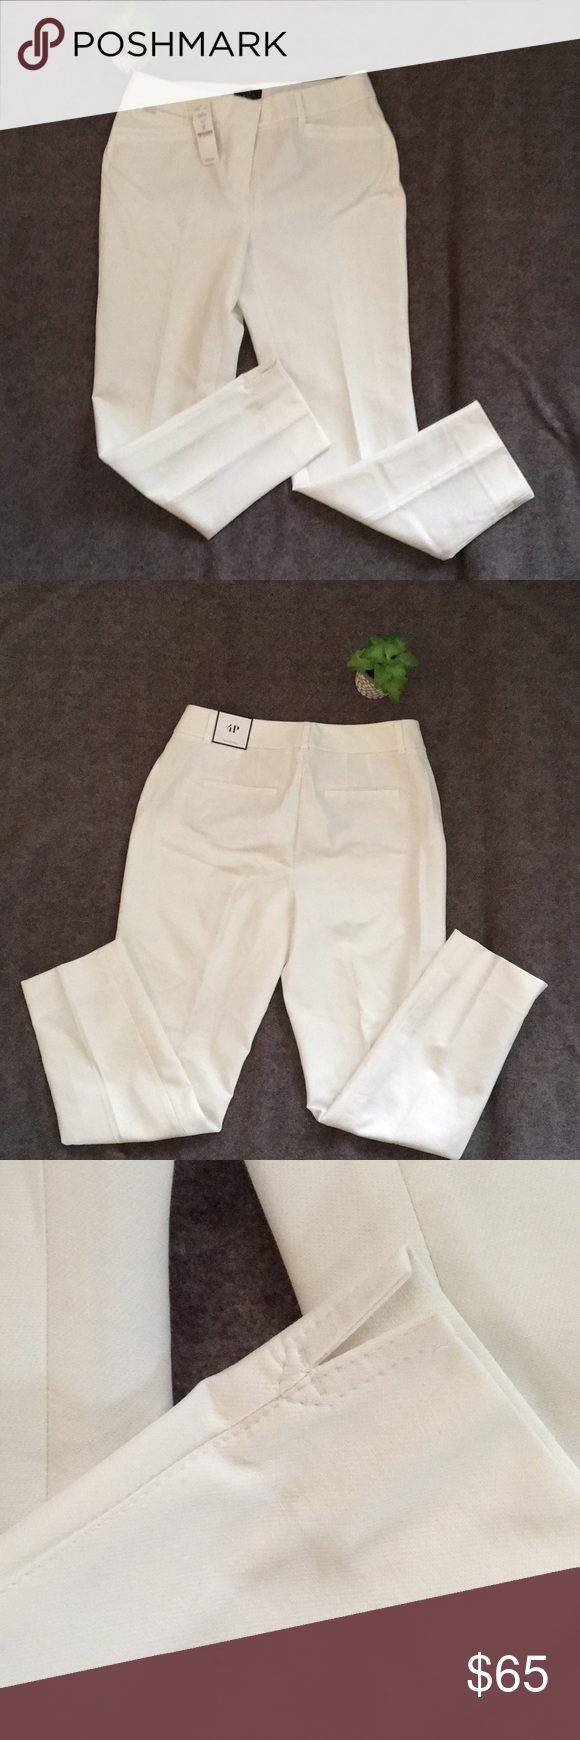 White Slacks White slacks with front and back pockets. The slim ankle. Loops on waist for belt. Front zipper closure with metal hook and eye. Bottom of pants have open slits. Brand new with tags. White House Black Market Pants Trousers #whiteslacks White Slacks White slacks with front and back pockets. The slim ankle. Loops on waist for belt. Front zipper closure with metal hook and eye. Bottom of pants have open slits. Brand new with tags. White House Black Market Pants Trousers #whiteslacks Wh #whiteslacks